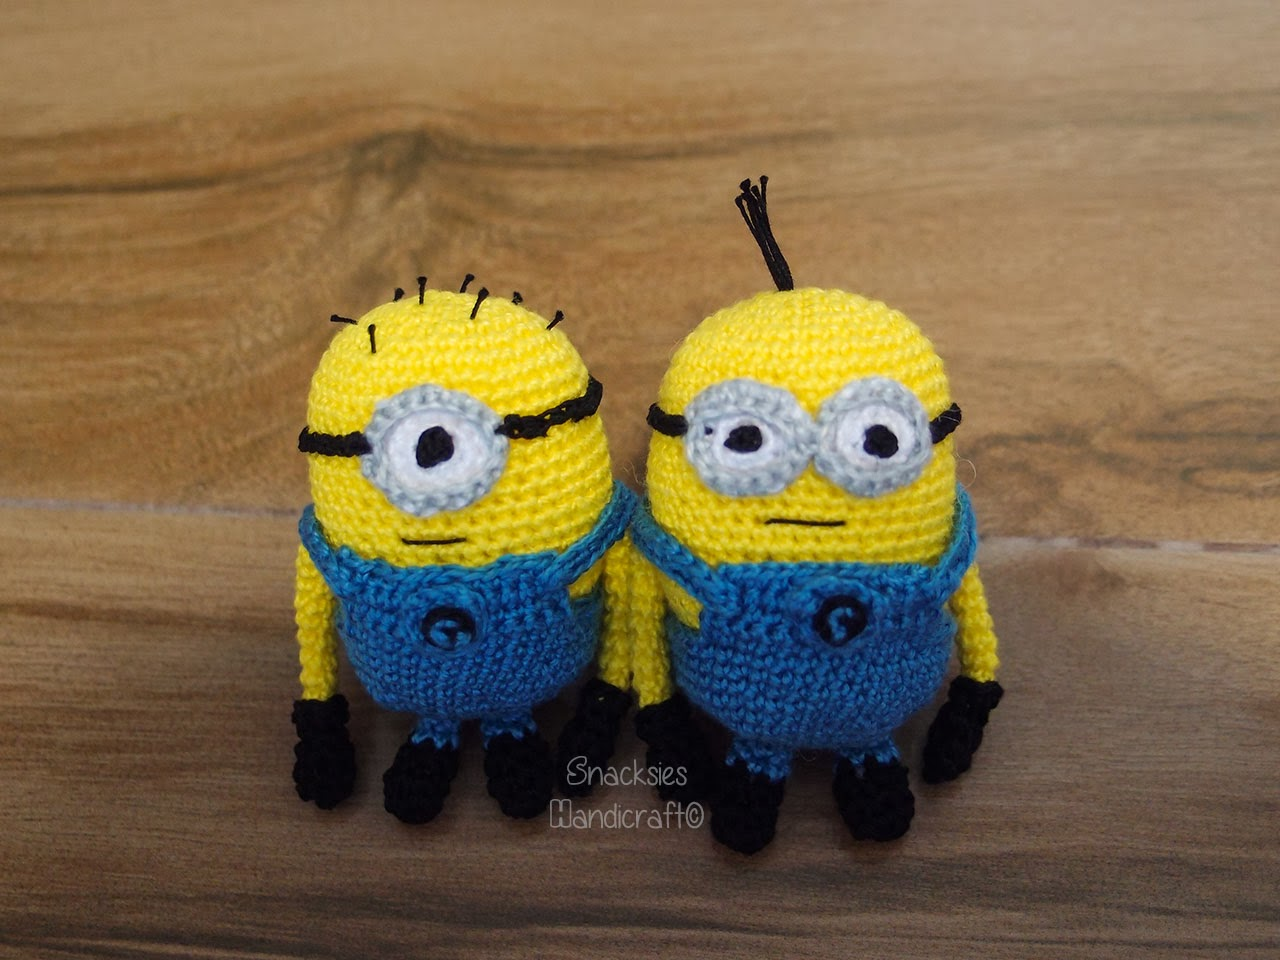 Free Crochet Pattern For Minion Toy : Mini Minions Amigurumi ~ Snacksies Handicraft Corner